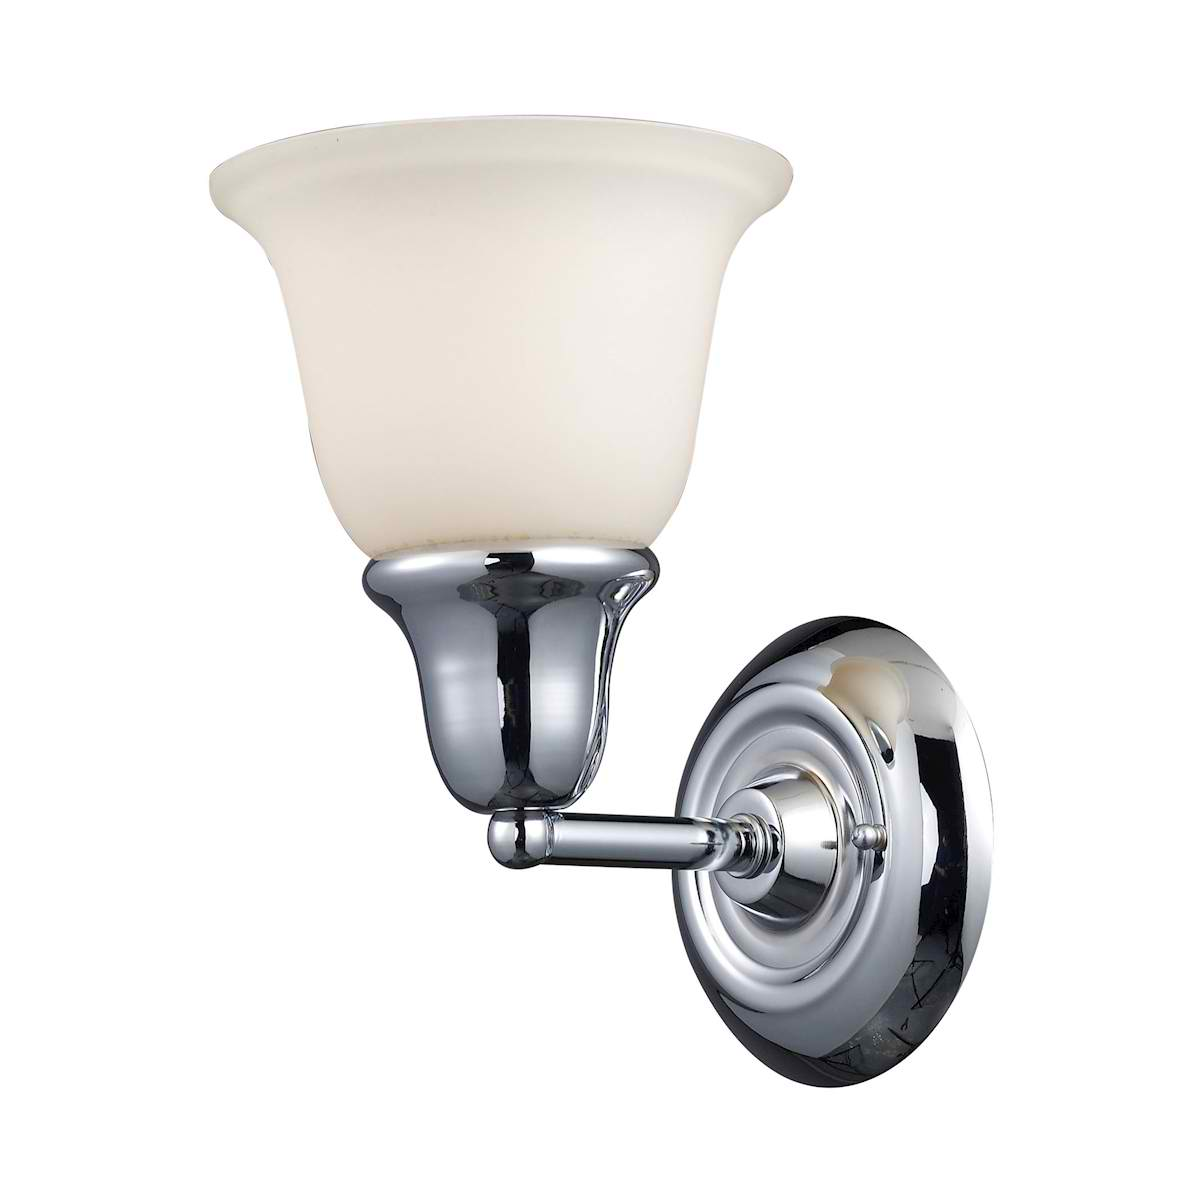 Berwick 1-Light Sconce in Polished Chrome